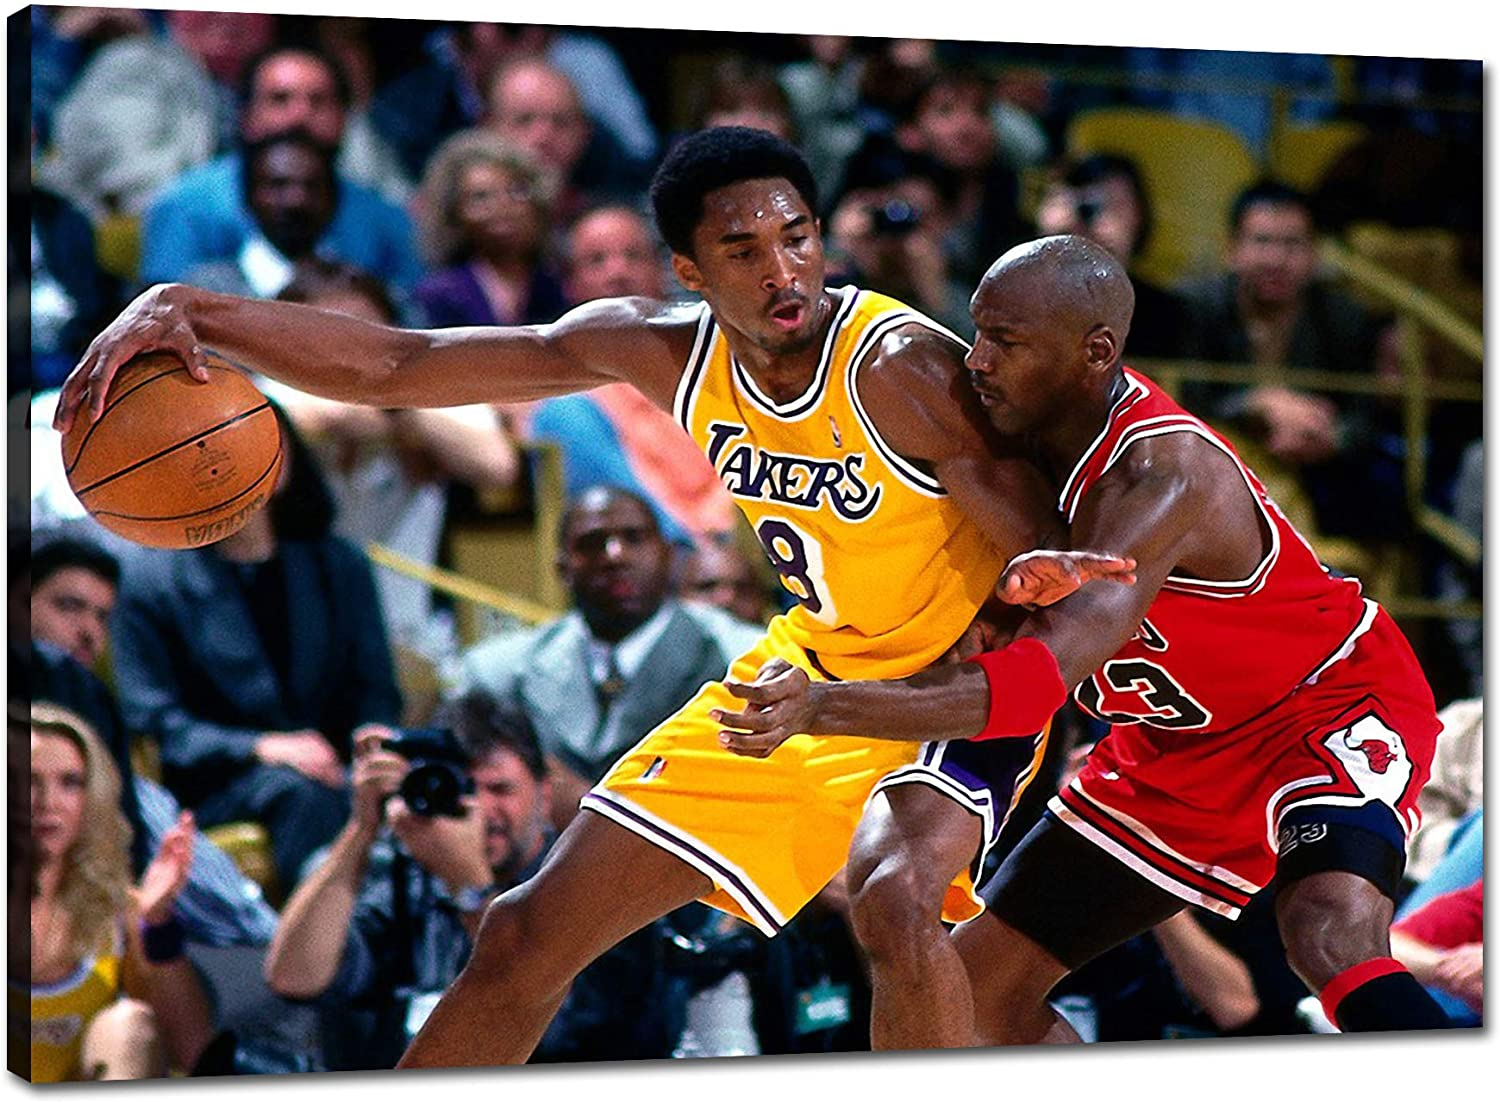 TWO J NBA Legends Star Kobe Bryant Vs Michael Jordan Classic Matchup Posters HD Prints on Canvas Modern Home Decor Wall Art Painting Picture Stretched and Framed Artwork Ready to Hang [36''W x 24''H]